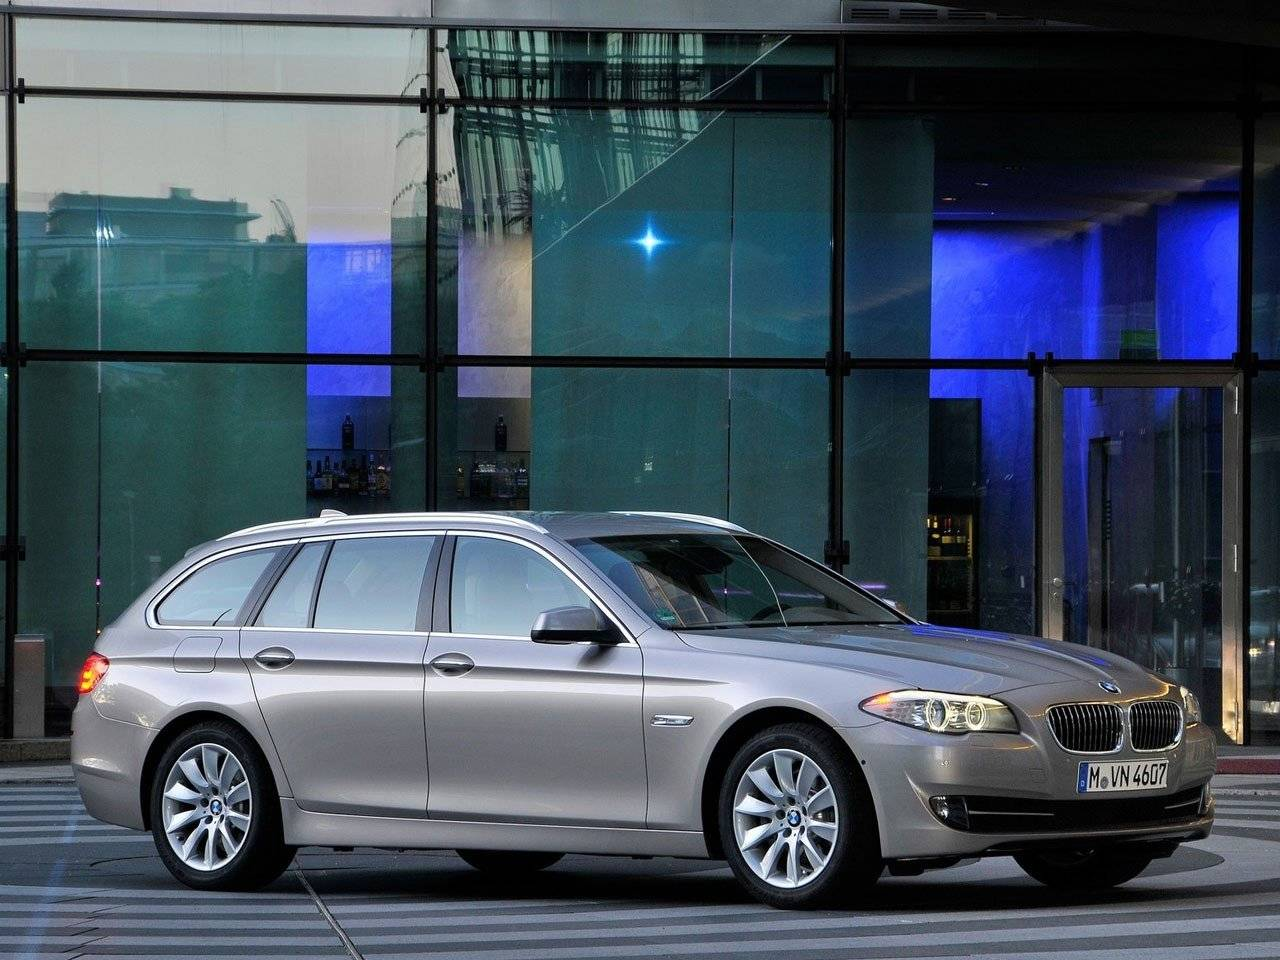 lease car of the year 2011 bmw 5 serie autonieuws. Black Bedroom Furniture Sets. Home Design Ideas